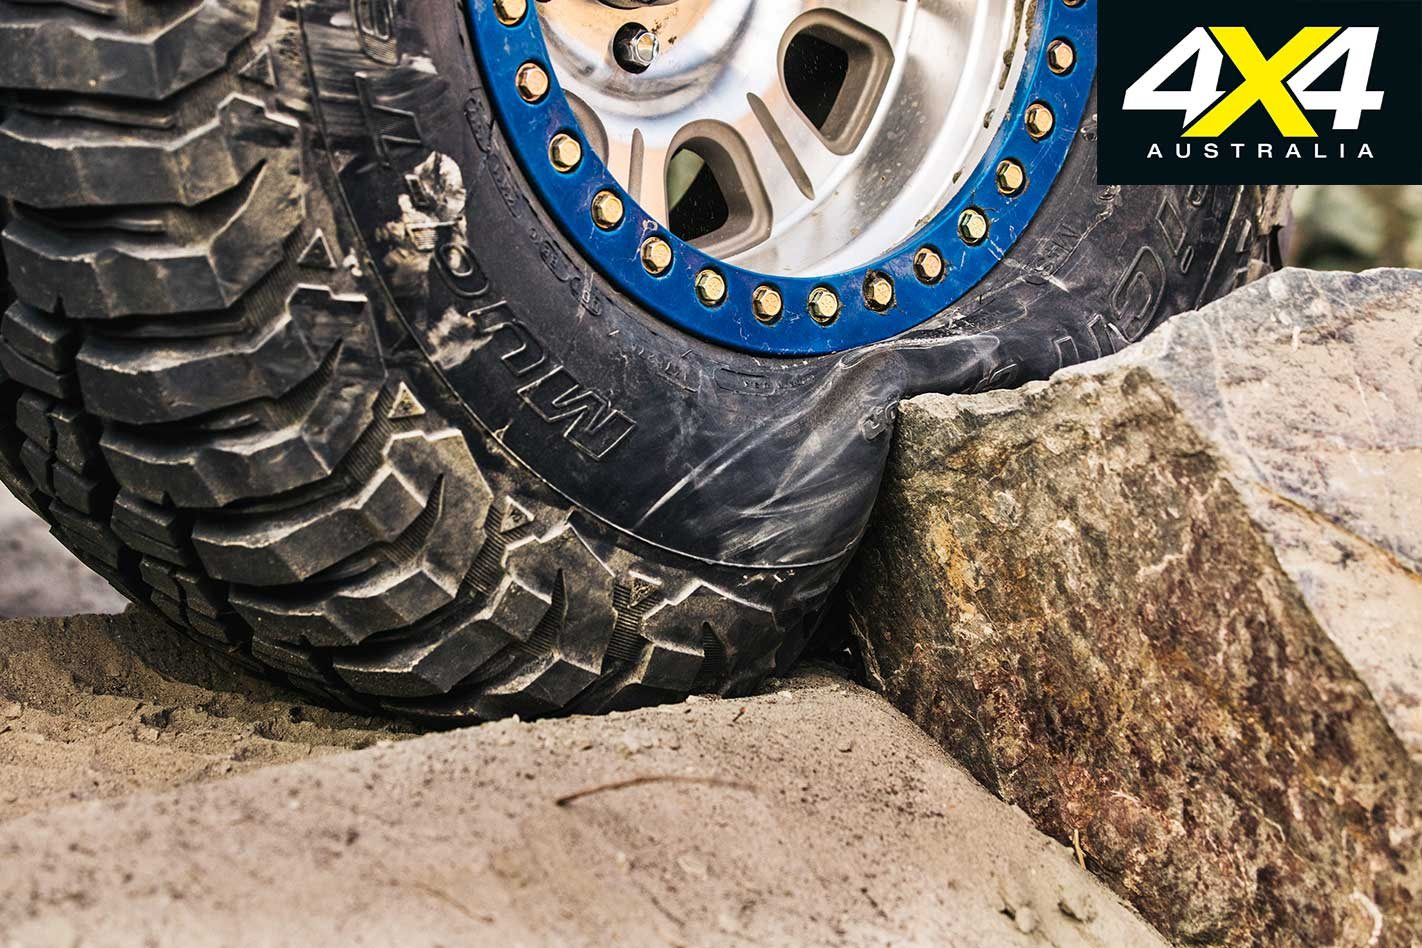 4x4 Off-Road Wheel Buyers' Guide